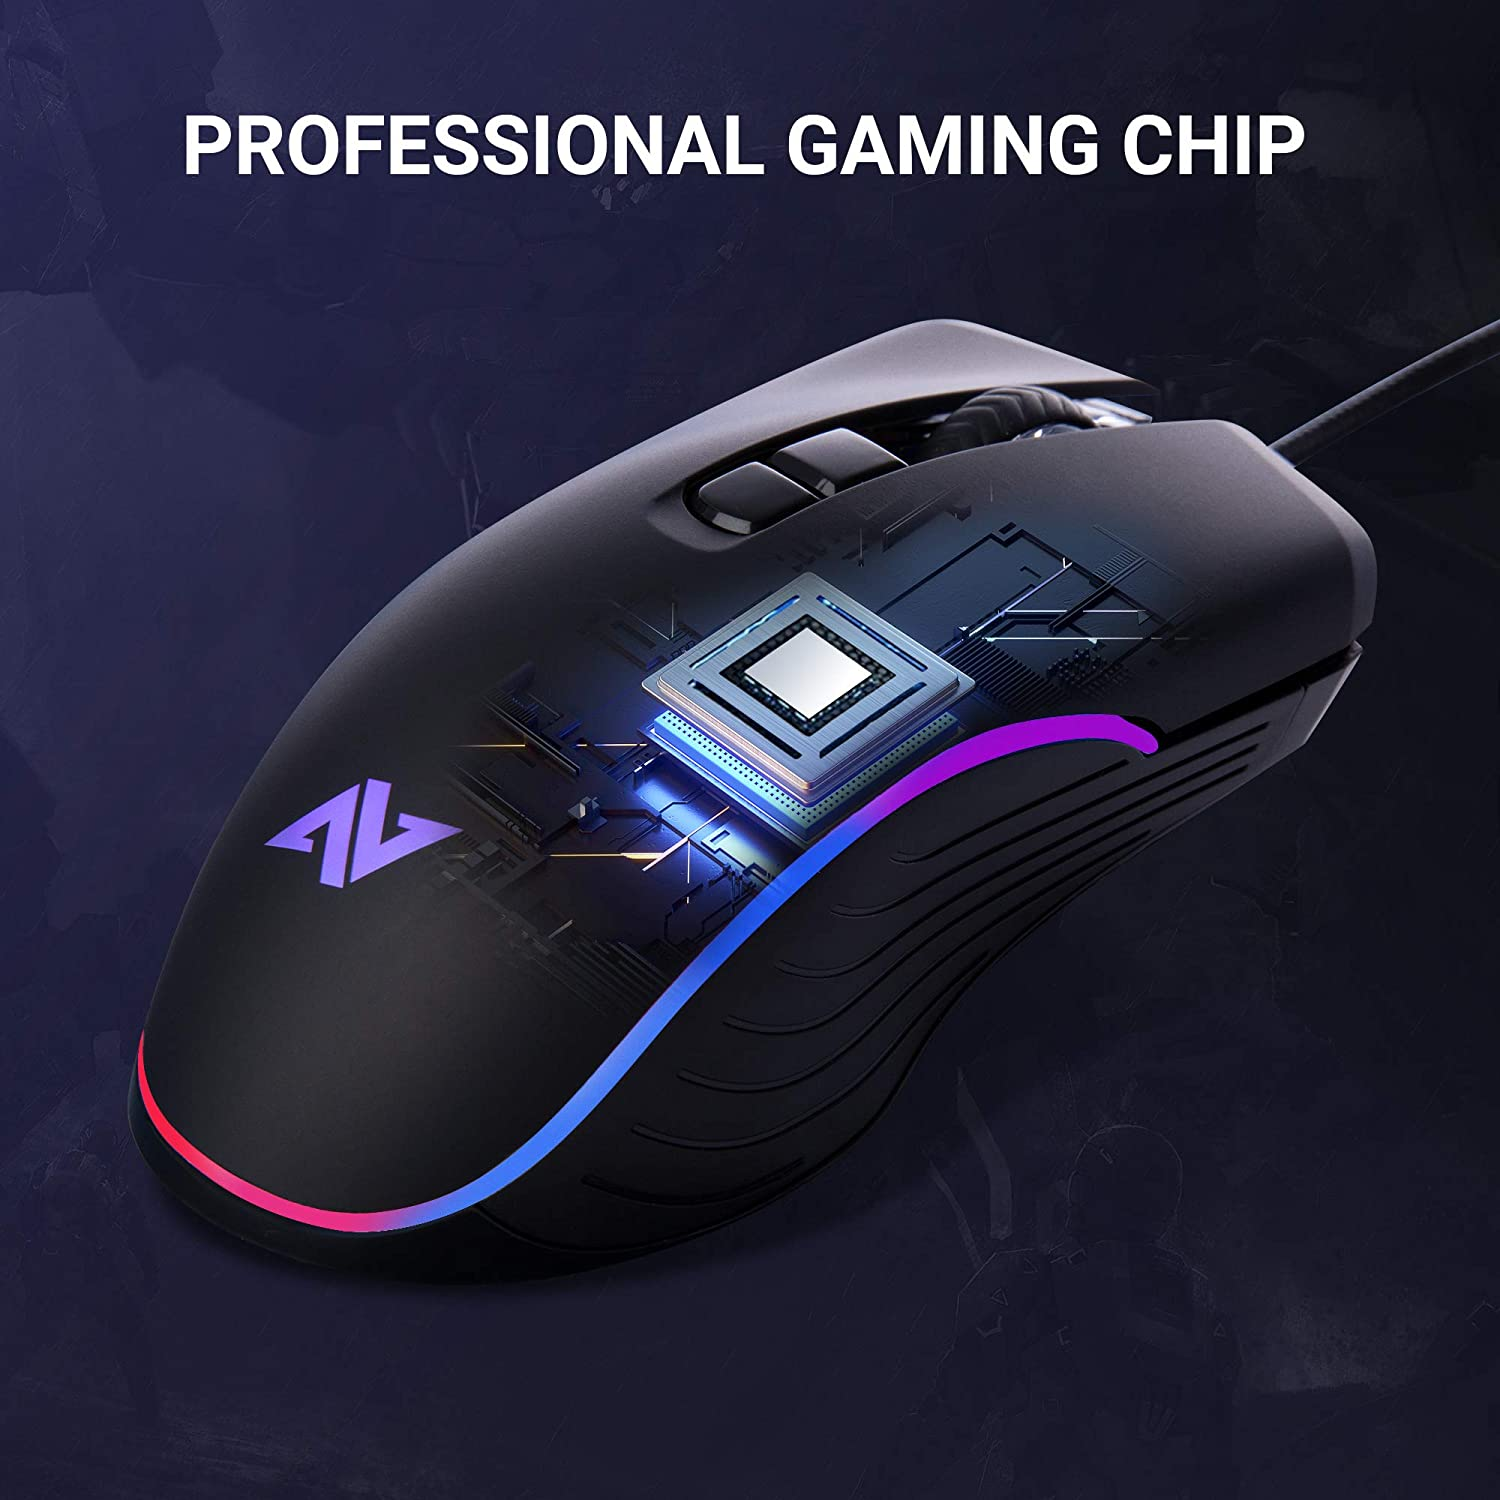 ABKONCORE AM6 Gaming Mouse with 4Dpi Levels (800, 1600, 2400, 3200), Programmable Buttons, Wired Ergonomic USB Computer Mouse for Gamer, Laptop, Chromebook, Mac (AM6): Electronics